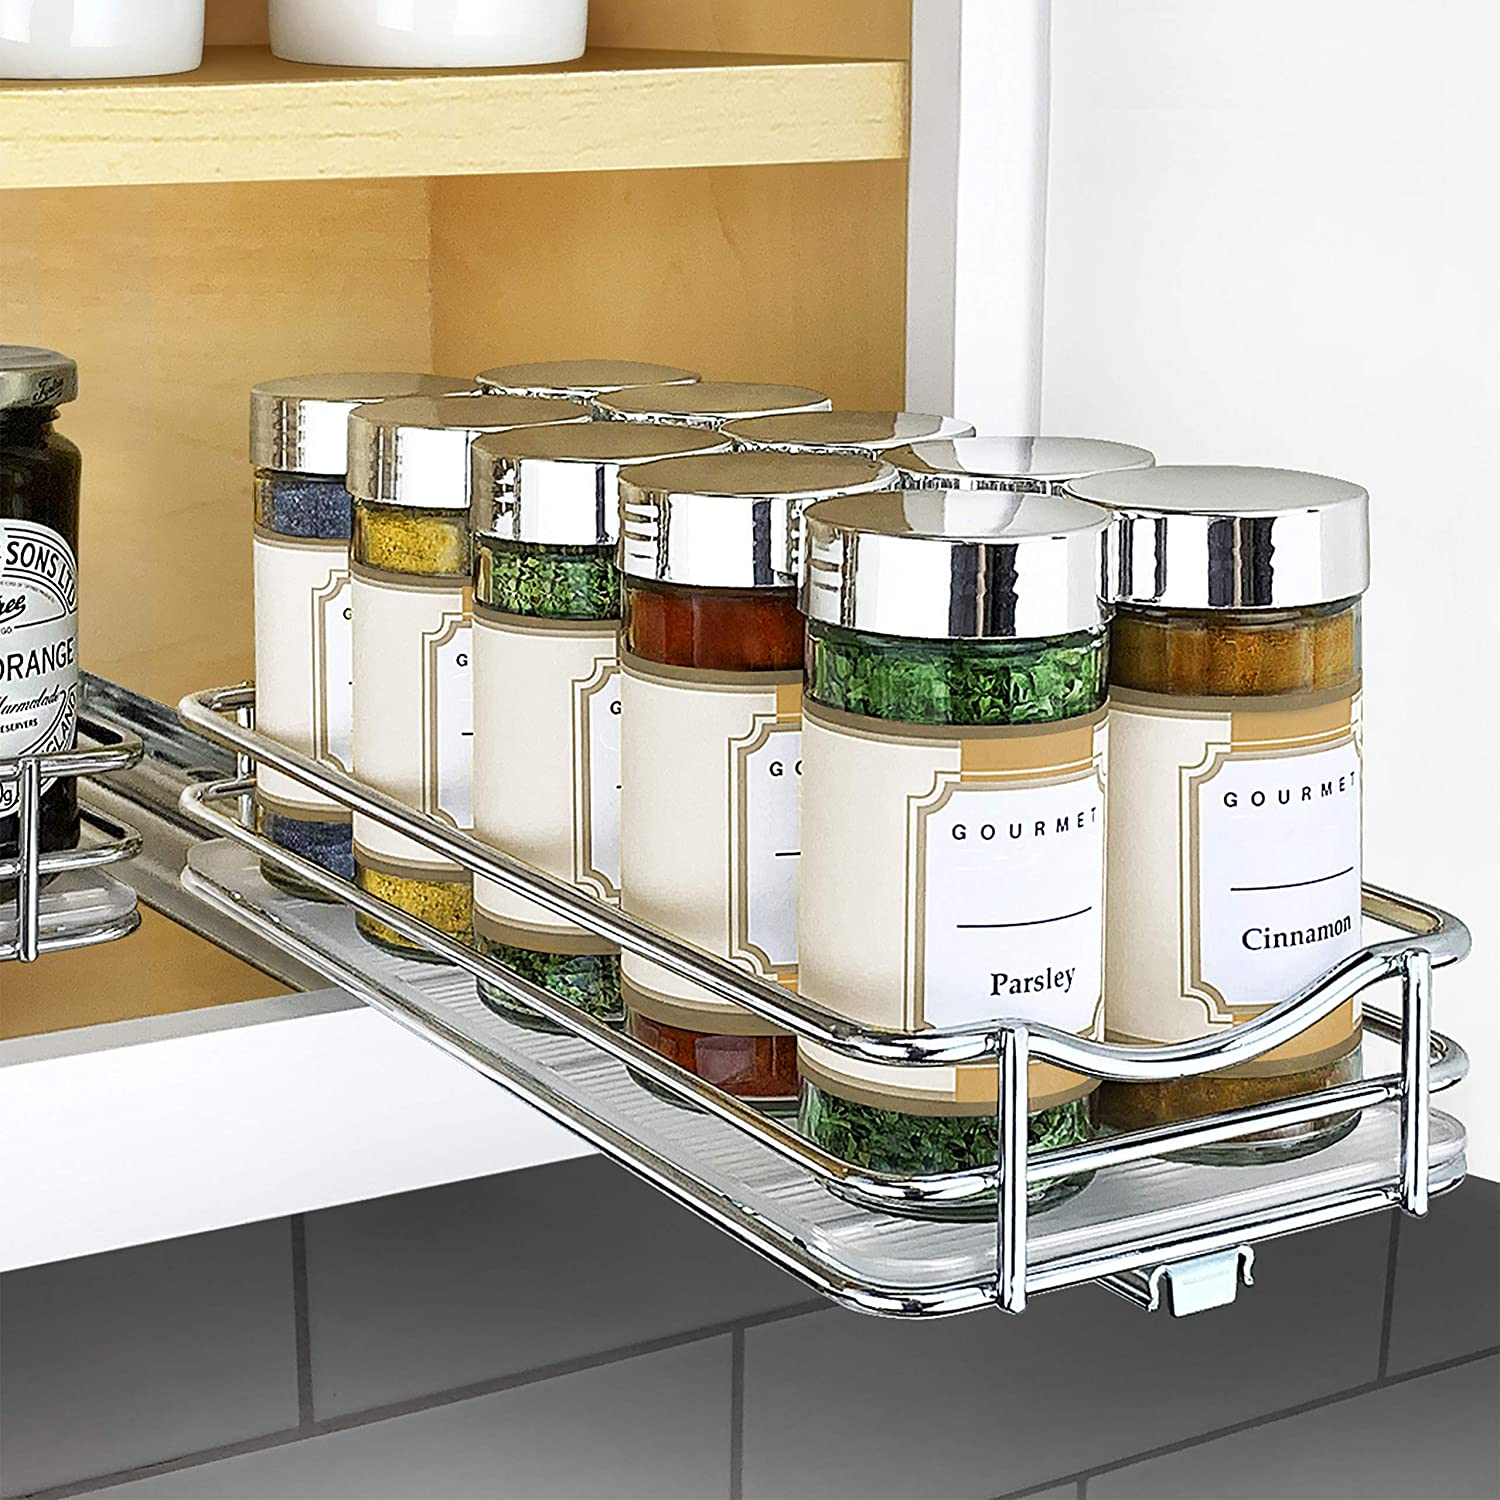 Amazon Com Lynk Professional Slide Out Spice Rack Upper Cabinet Organizer 4 1 4 Single Chrome Kitchen Dining